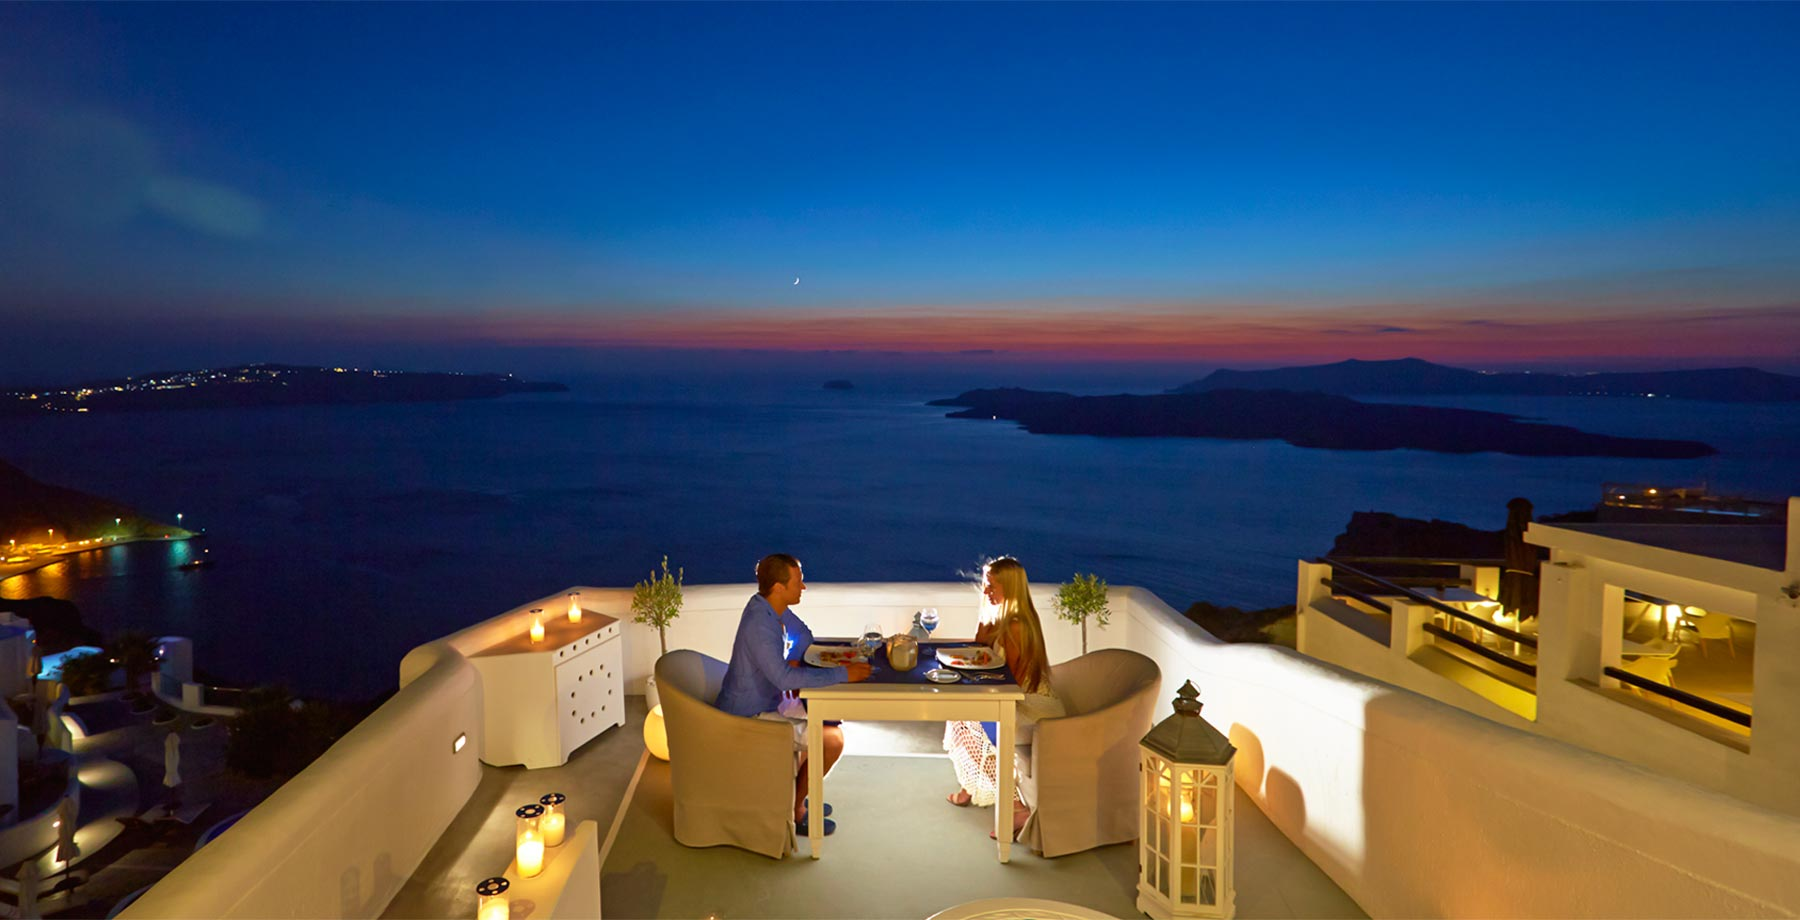 Santorini Dining Romantic Dinner Caldera Restaurant